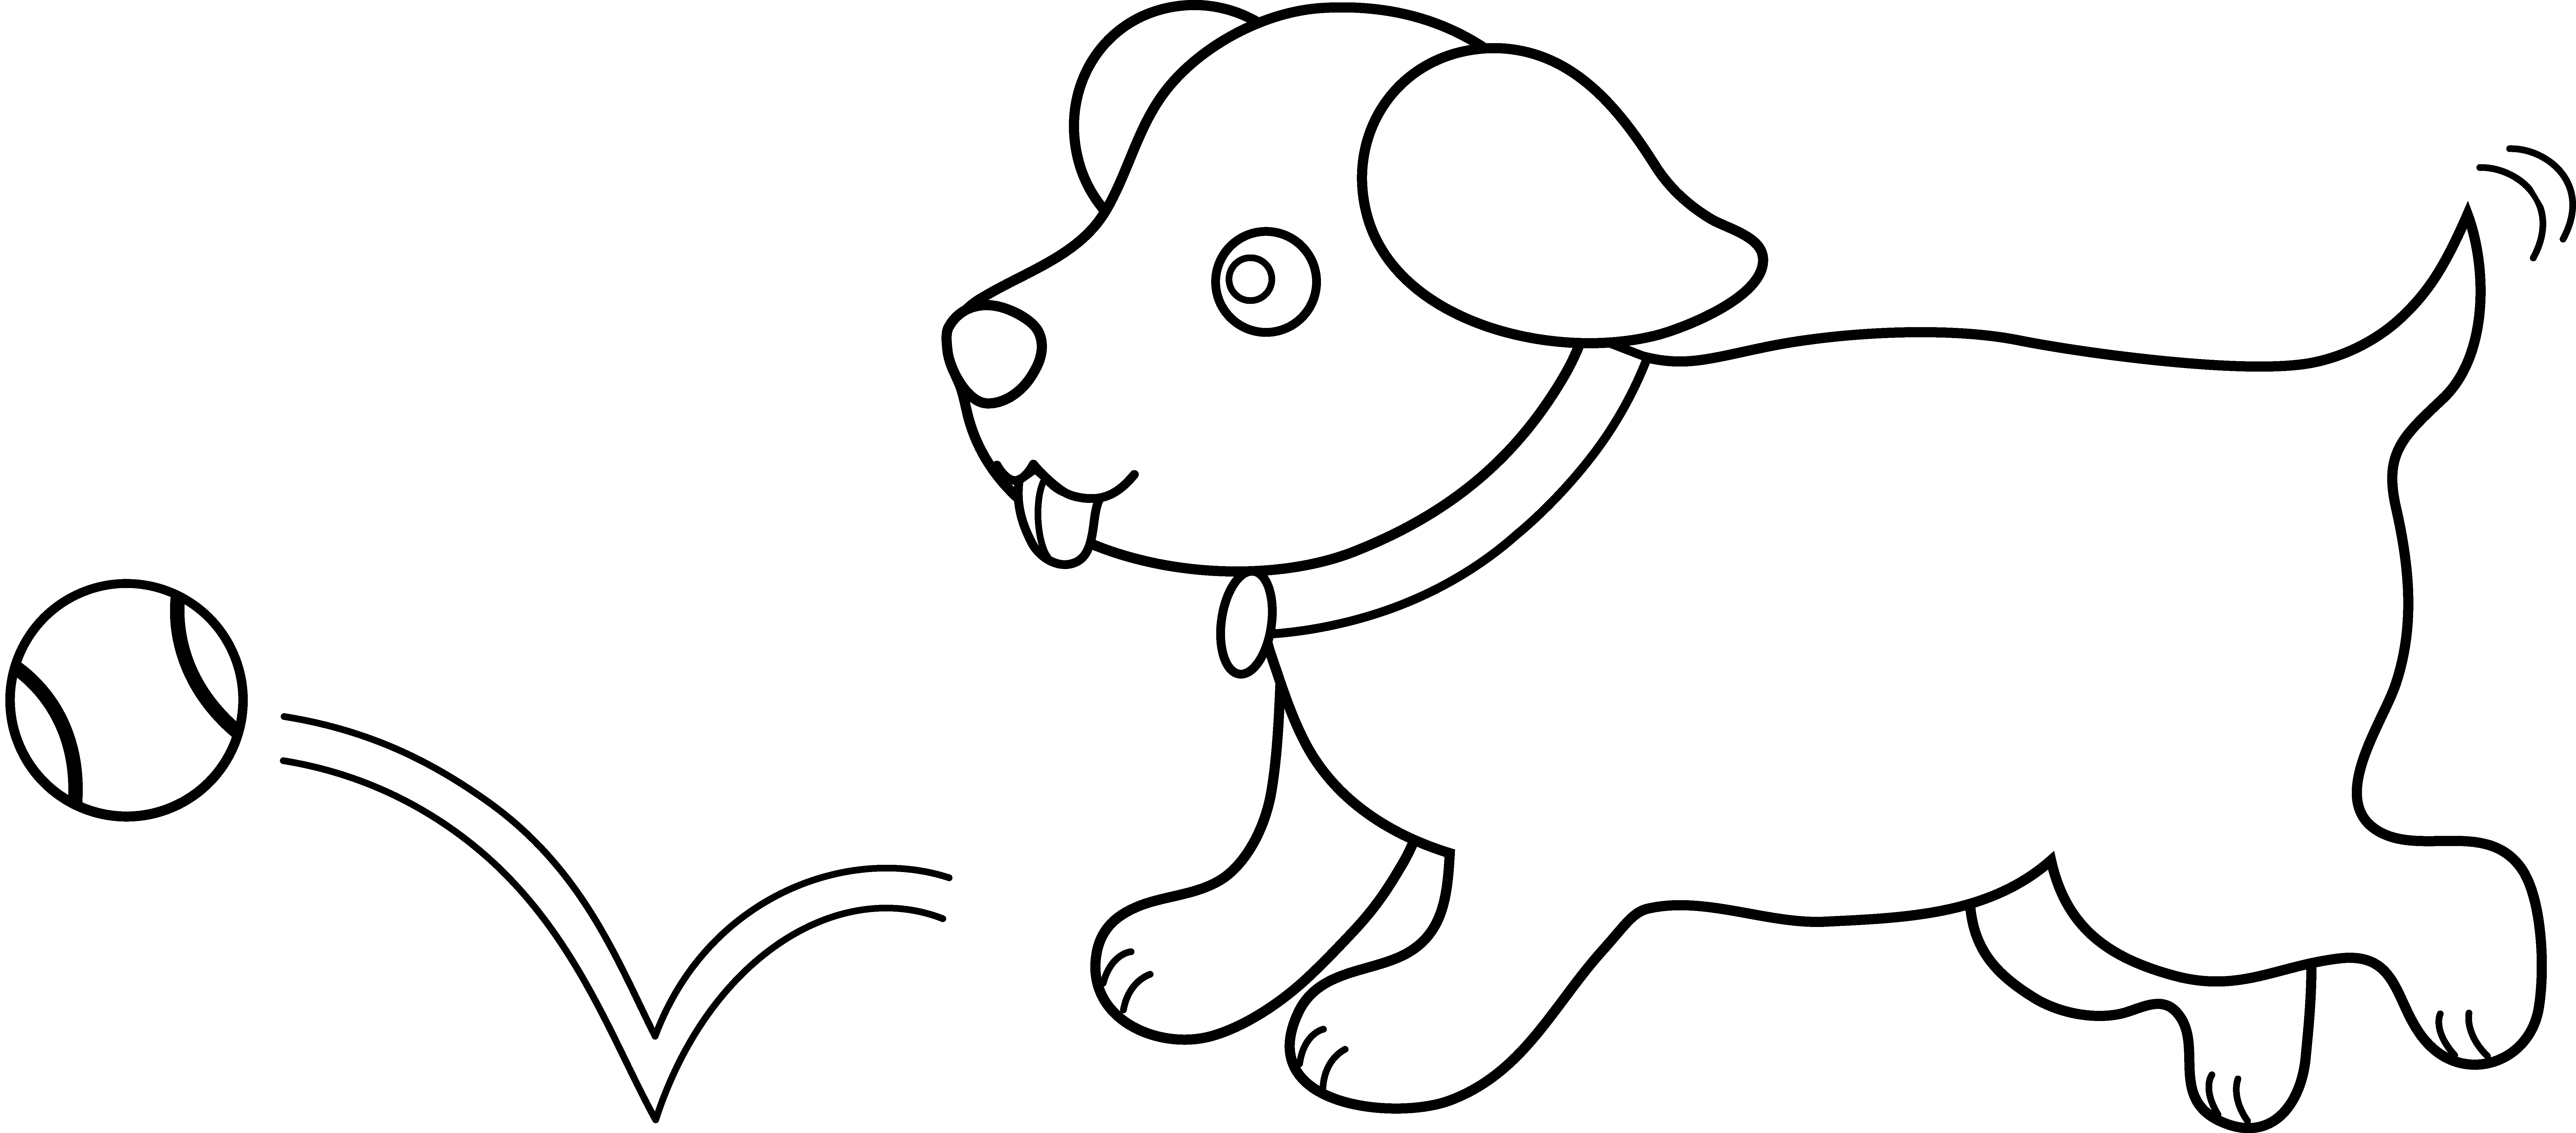 cute dog clip art black and white - Cute Puppies PNG Black And White